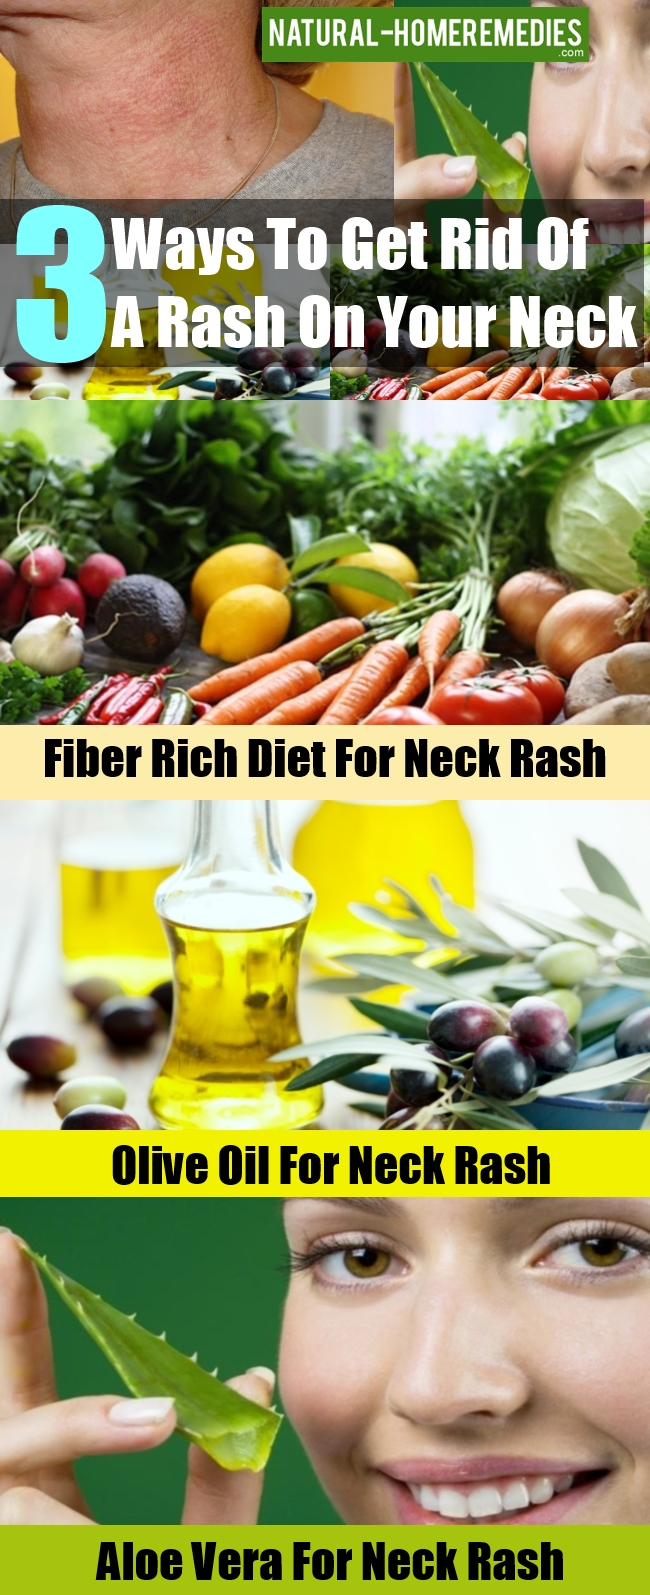 Ways To Get Rid Of A Rash On Your Neck